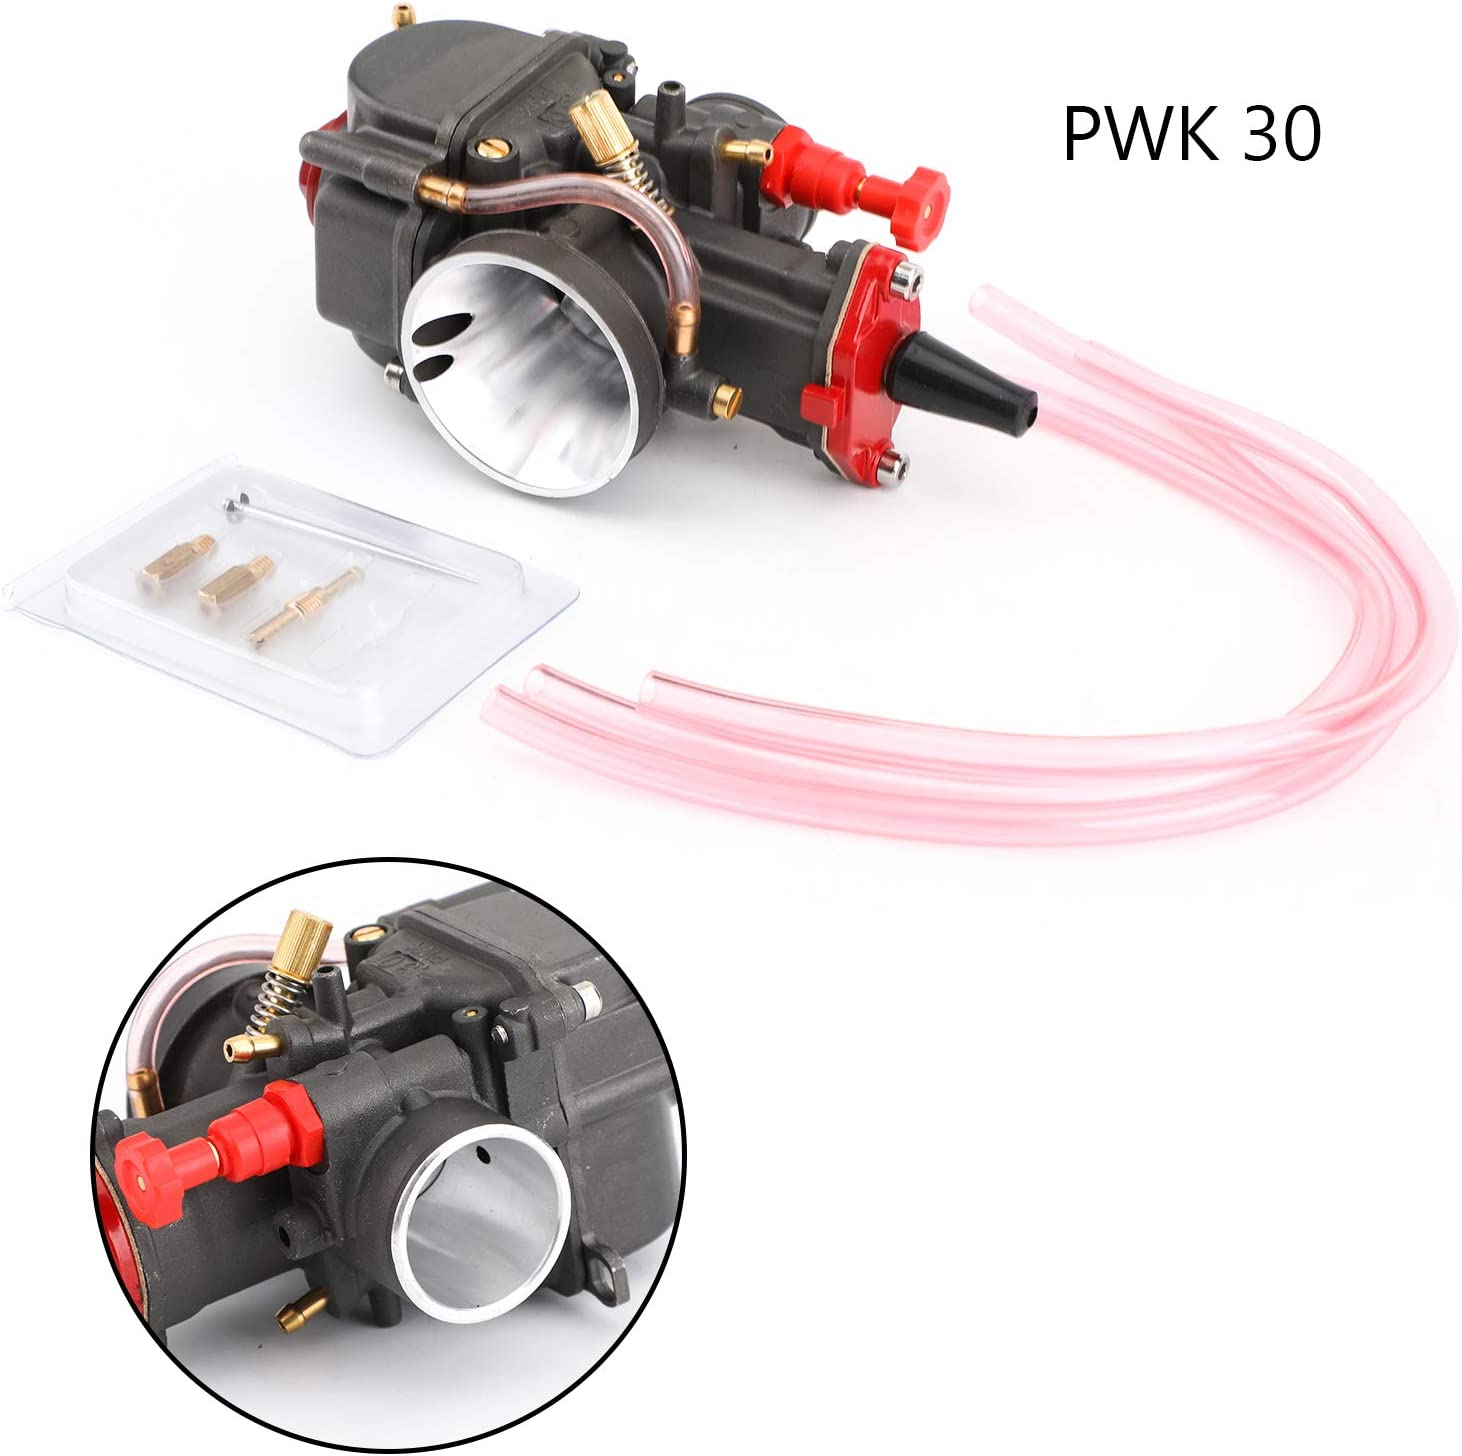 Max 80% OFF Artudatech 30mm PWK30 4T Motorcycle Power Jet Directly managed store Racing Carburetor